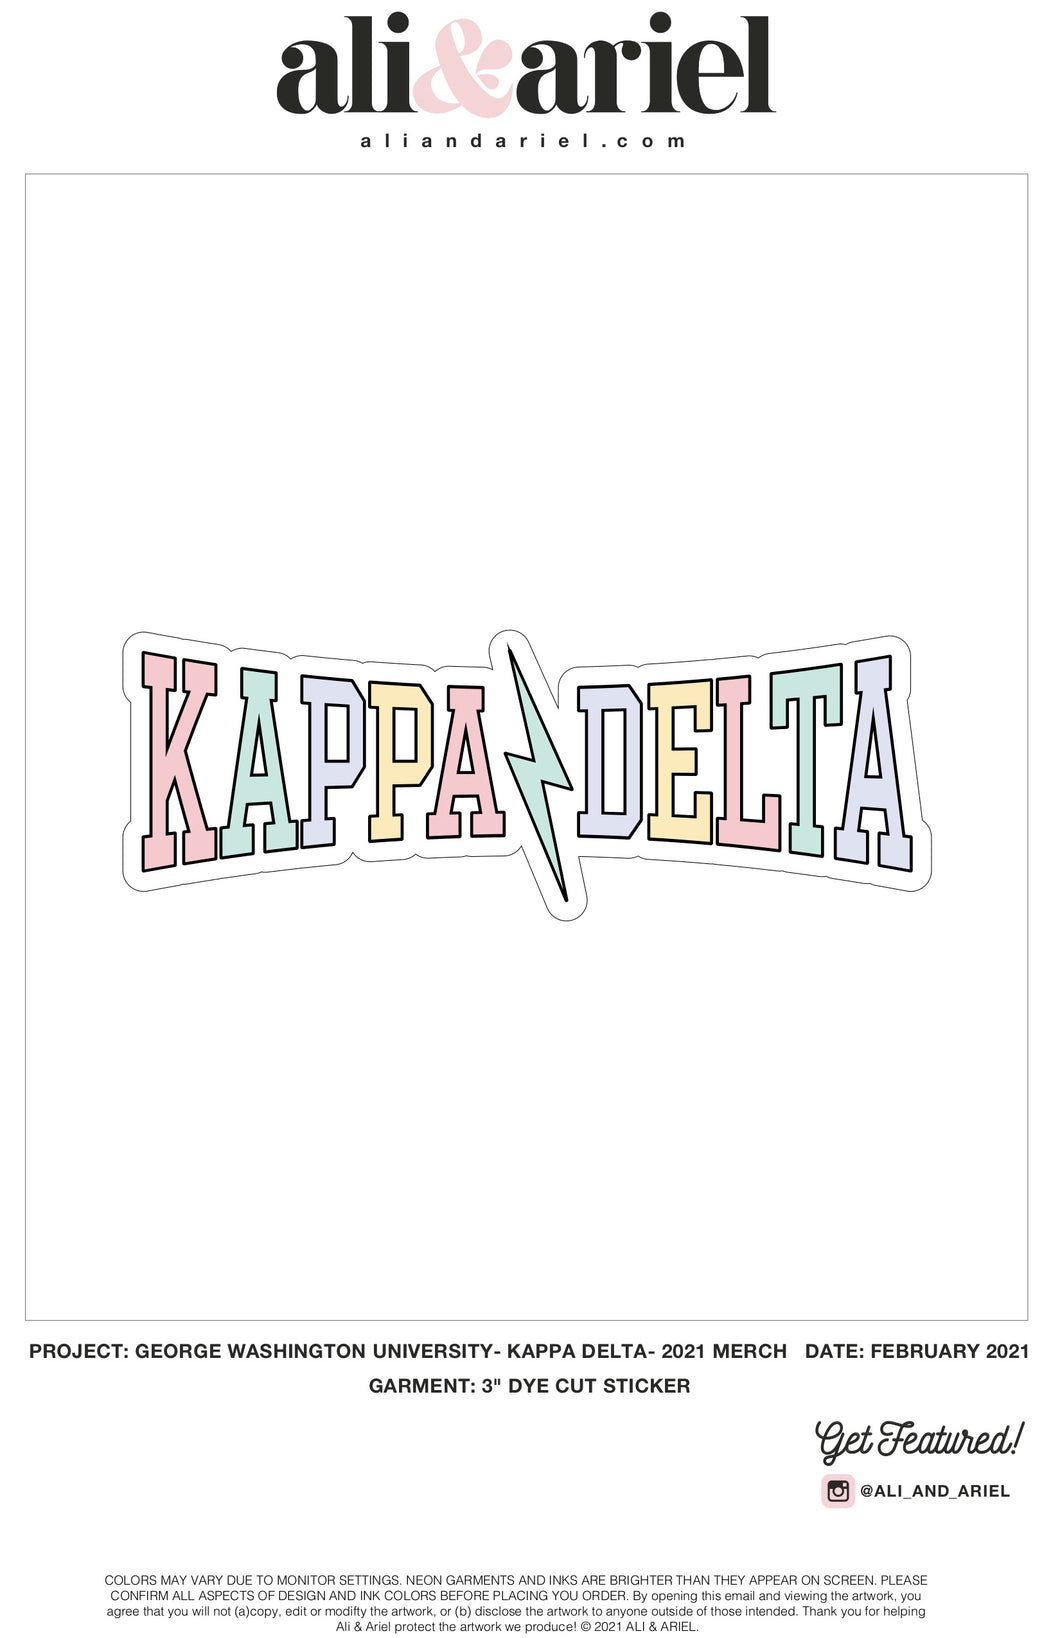 The George Washington University- Kappa Delta- Rainbow Stickers